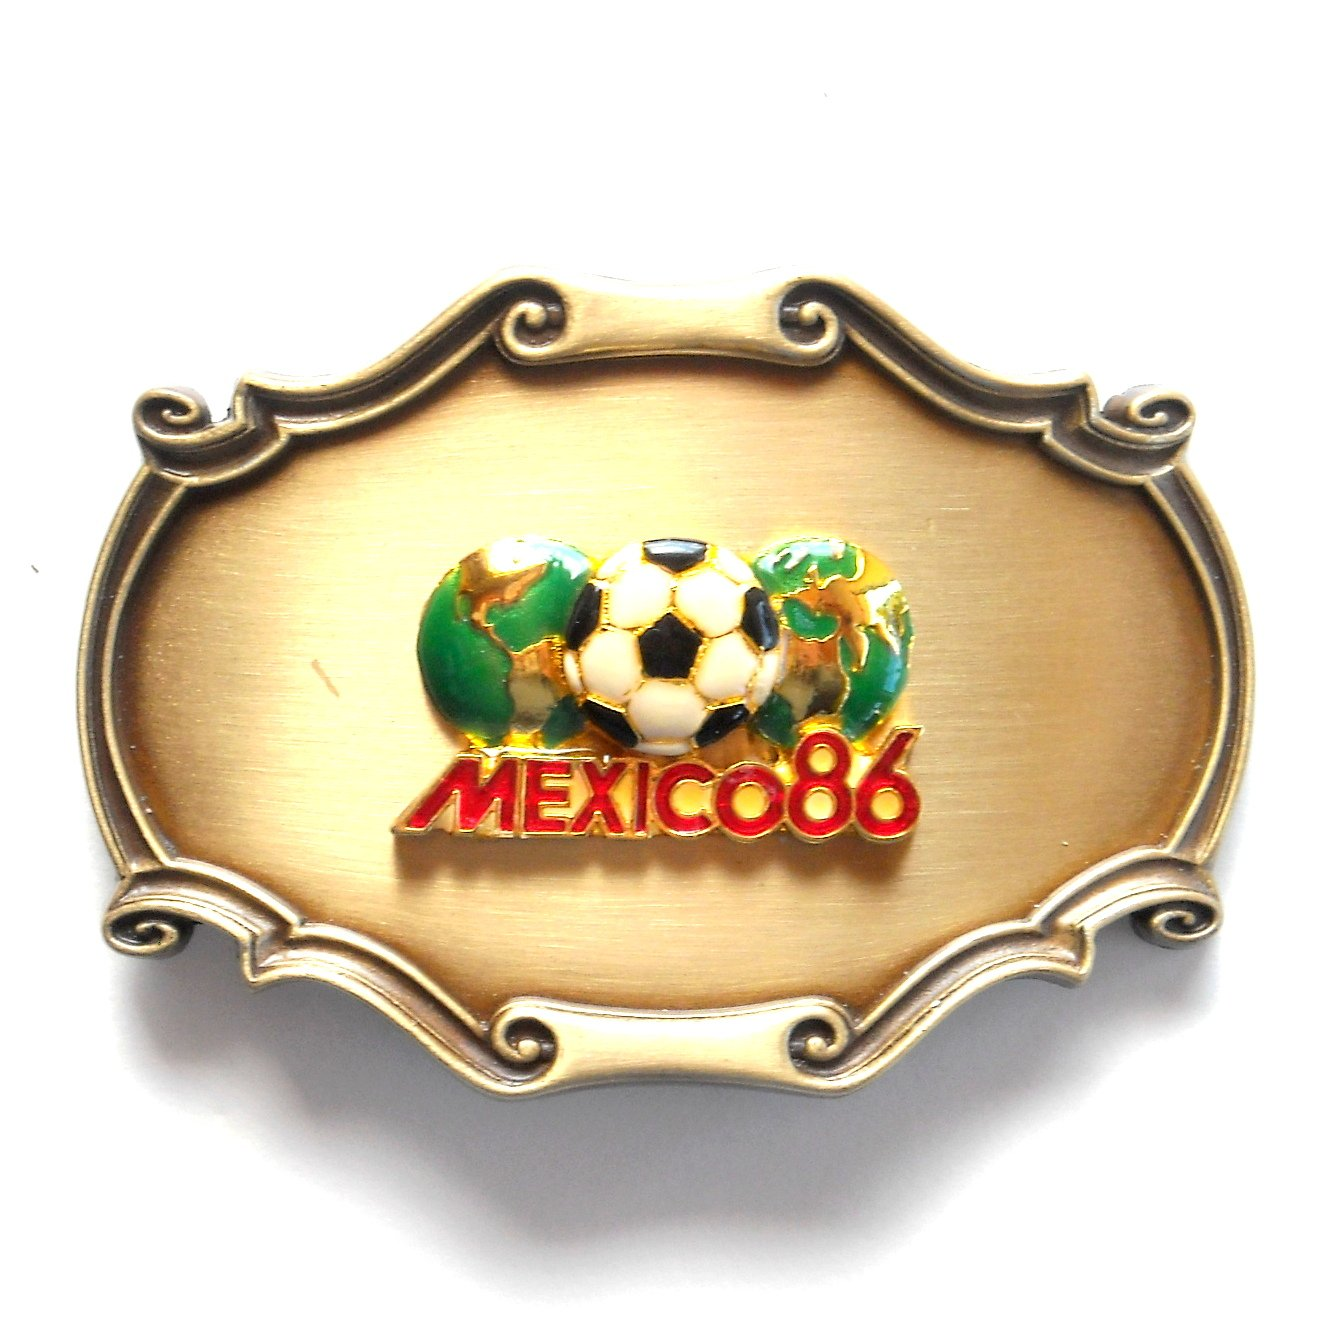 Vintage Mexico 1986 World Cup Raintree Metal Alloy Belt Buckle